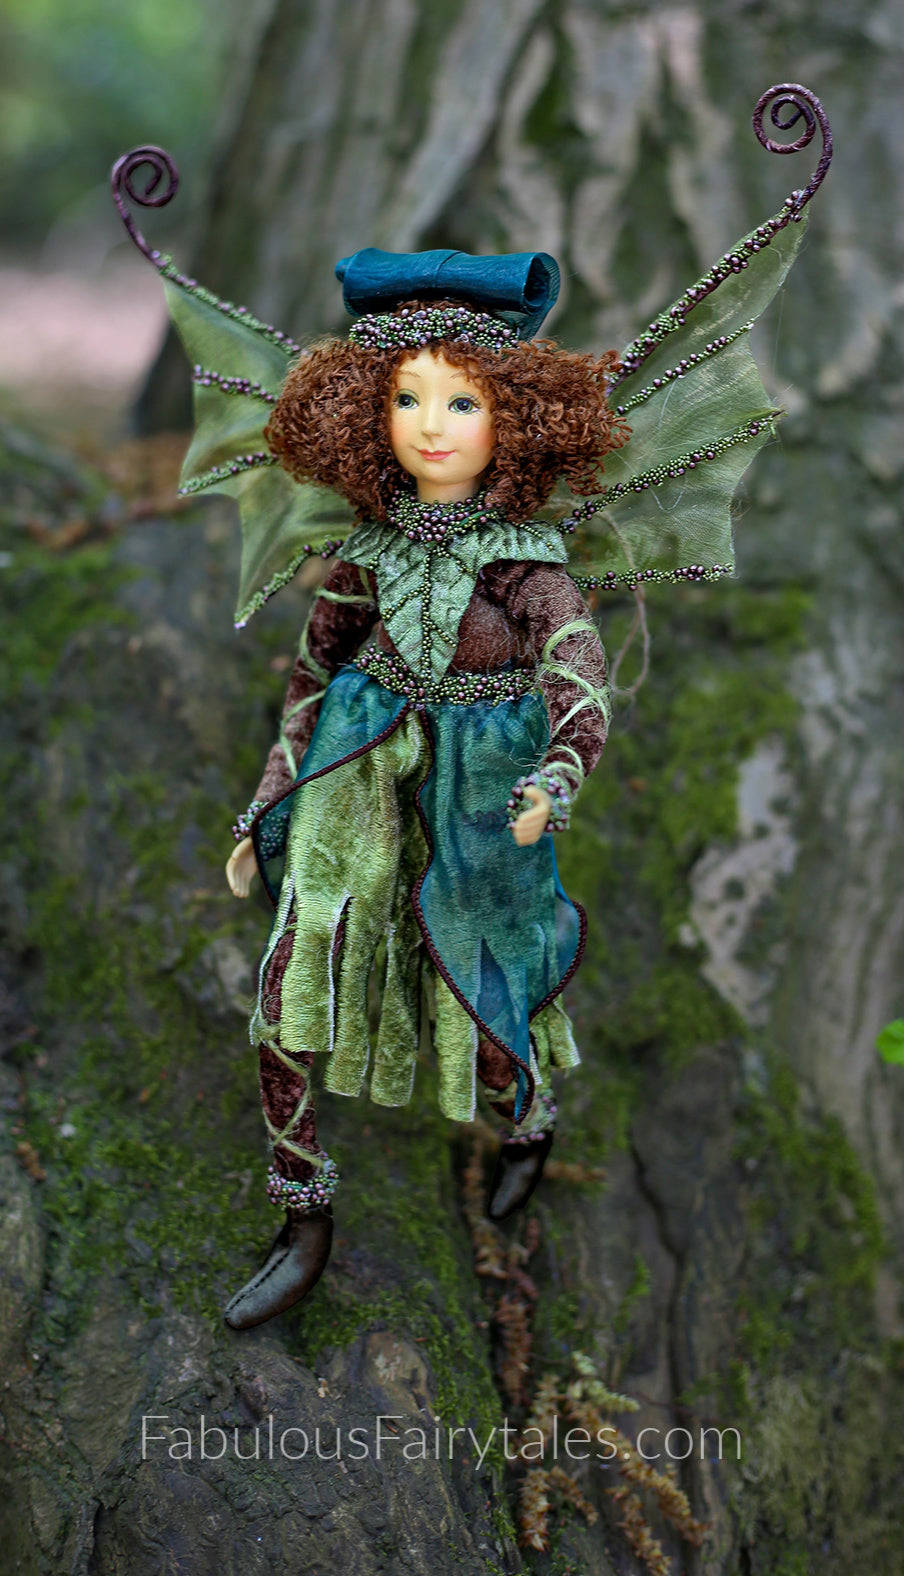 Fabulous Fairytales Luxury Christmas Forest Fairy Doll Ornament